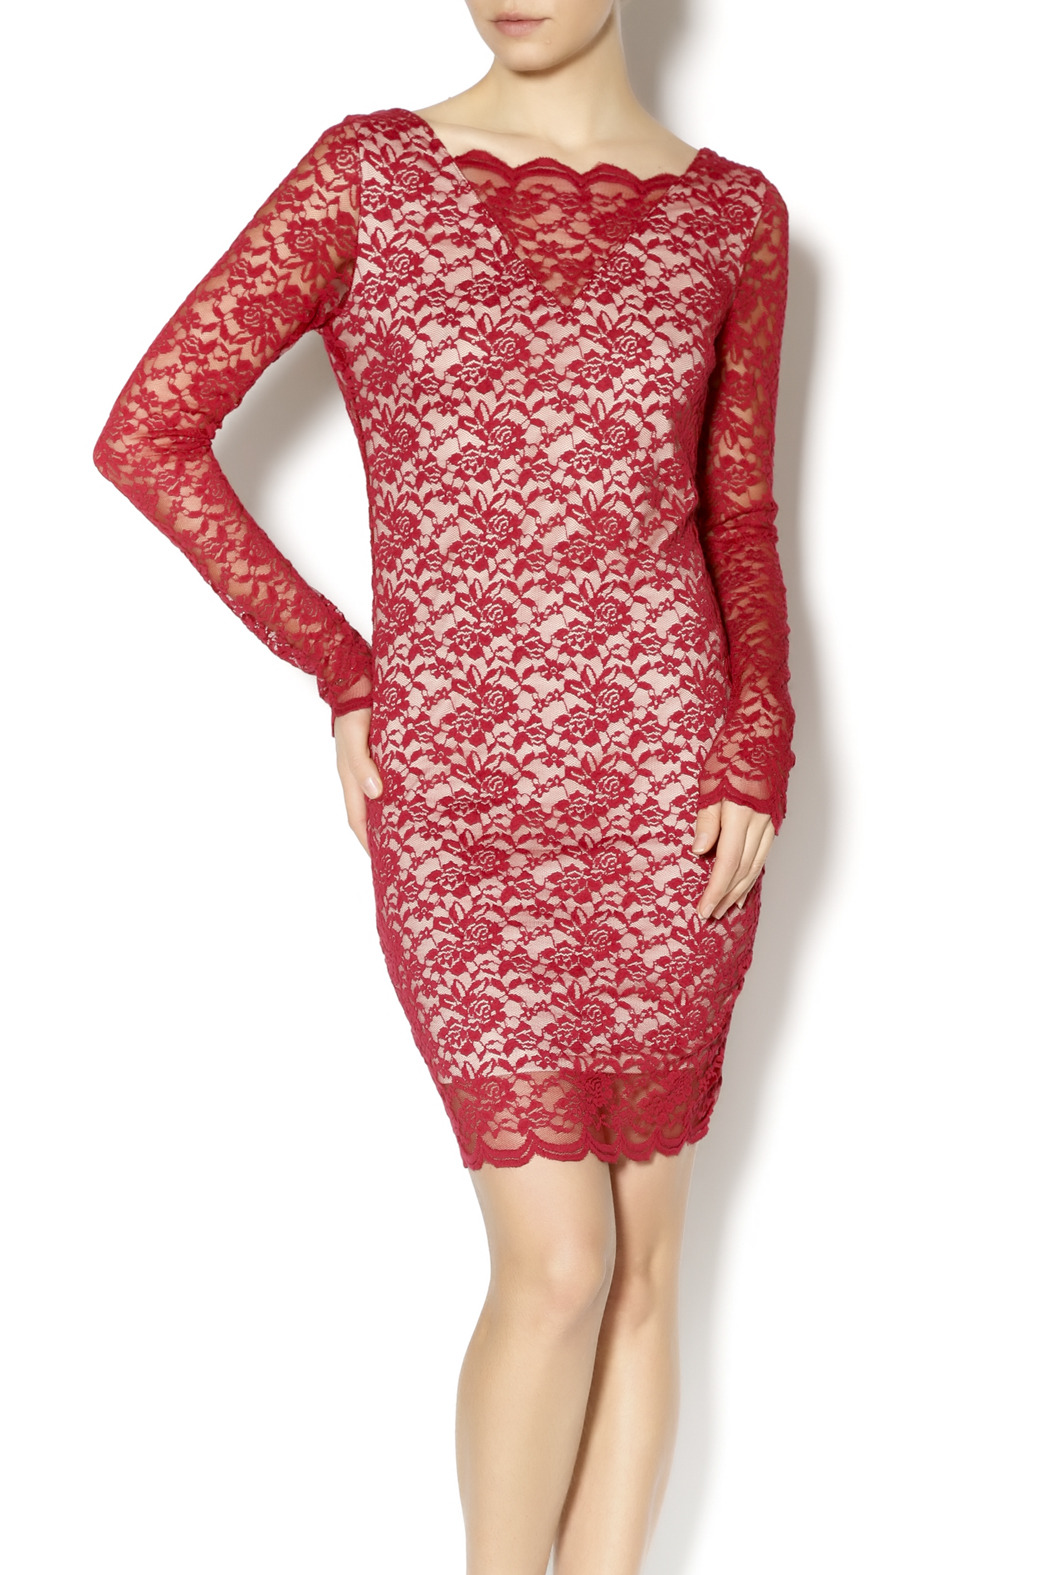 Double Zero Shiraz Lace Dress - Main Image